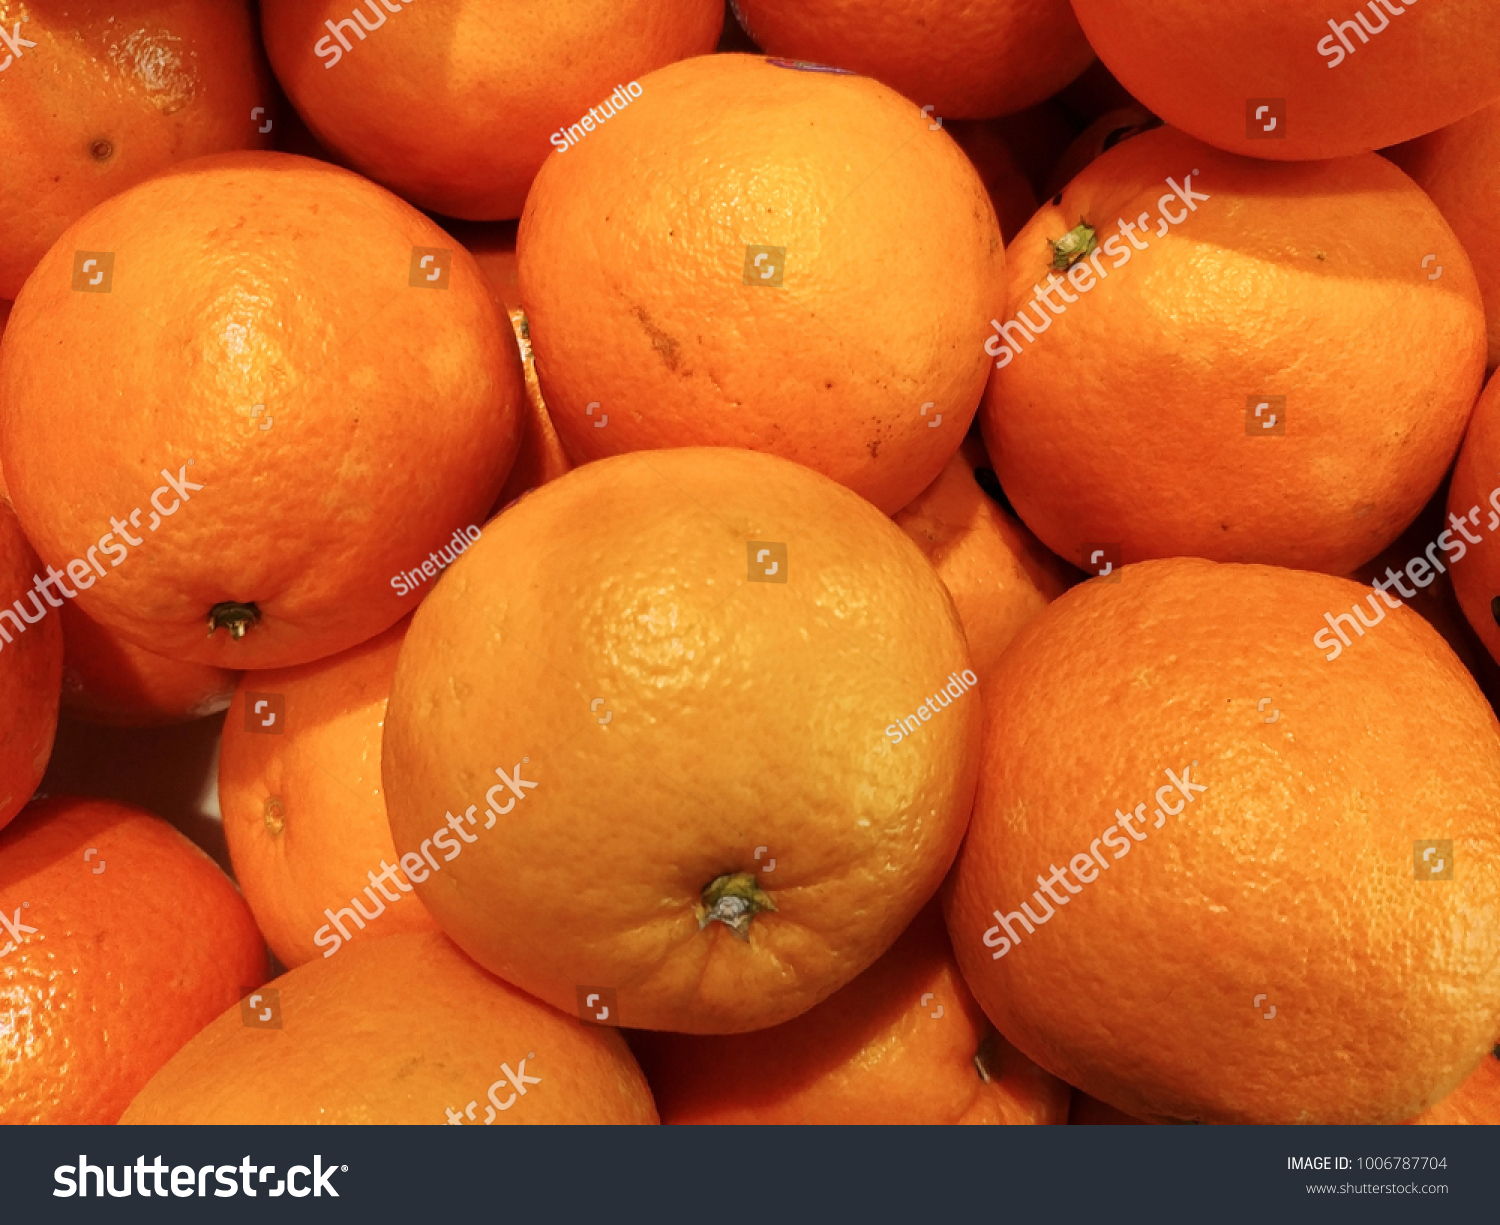 ... are in season in the supermarket during Chinese New Year. Fresh fruit good for better health. Fresh China Navel mandarin orange background wallpaper.